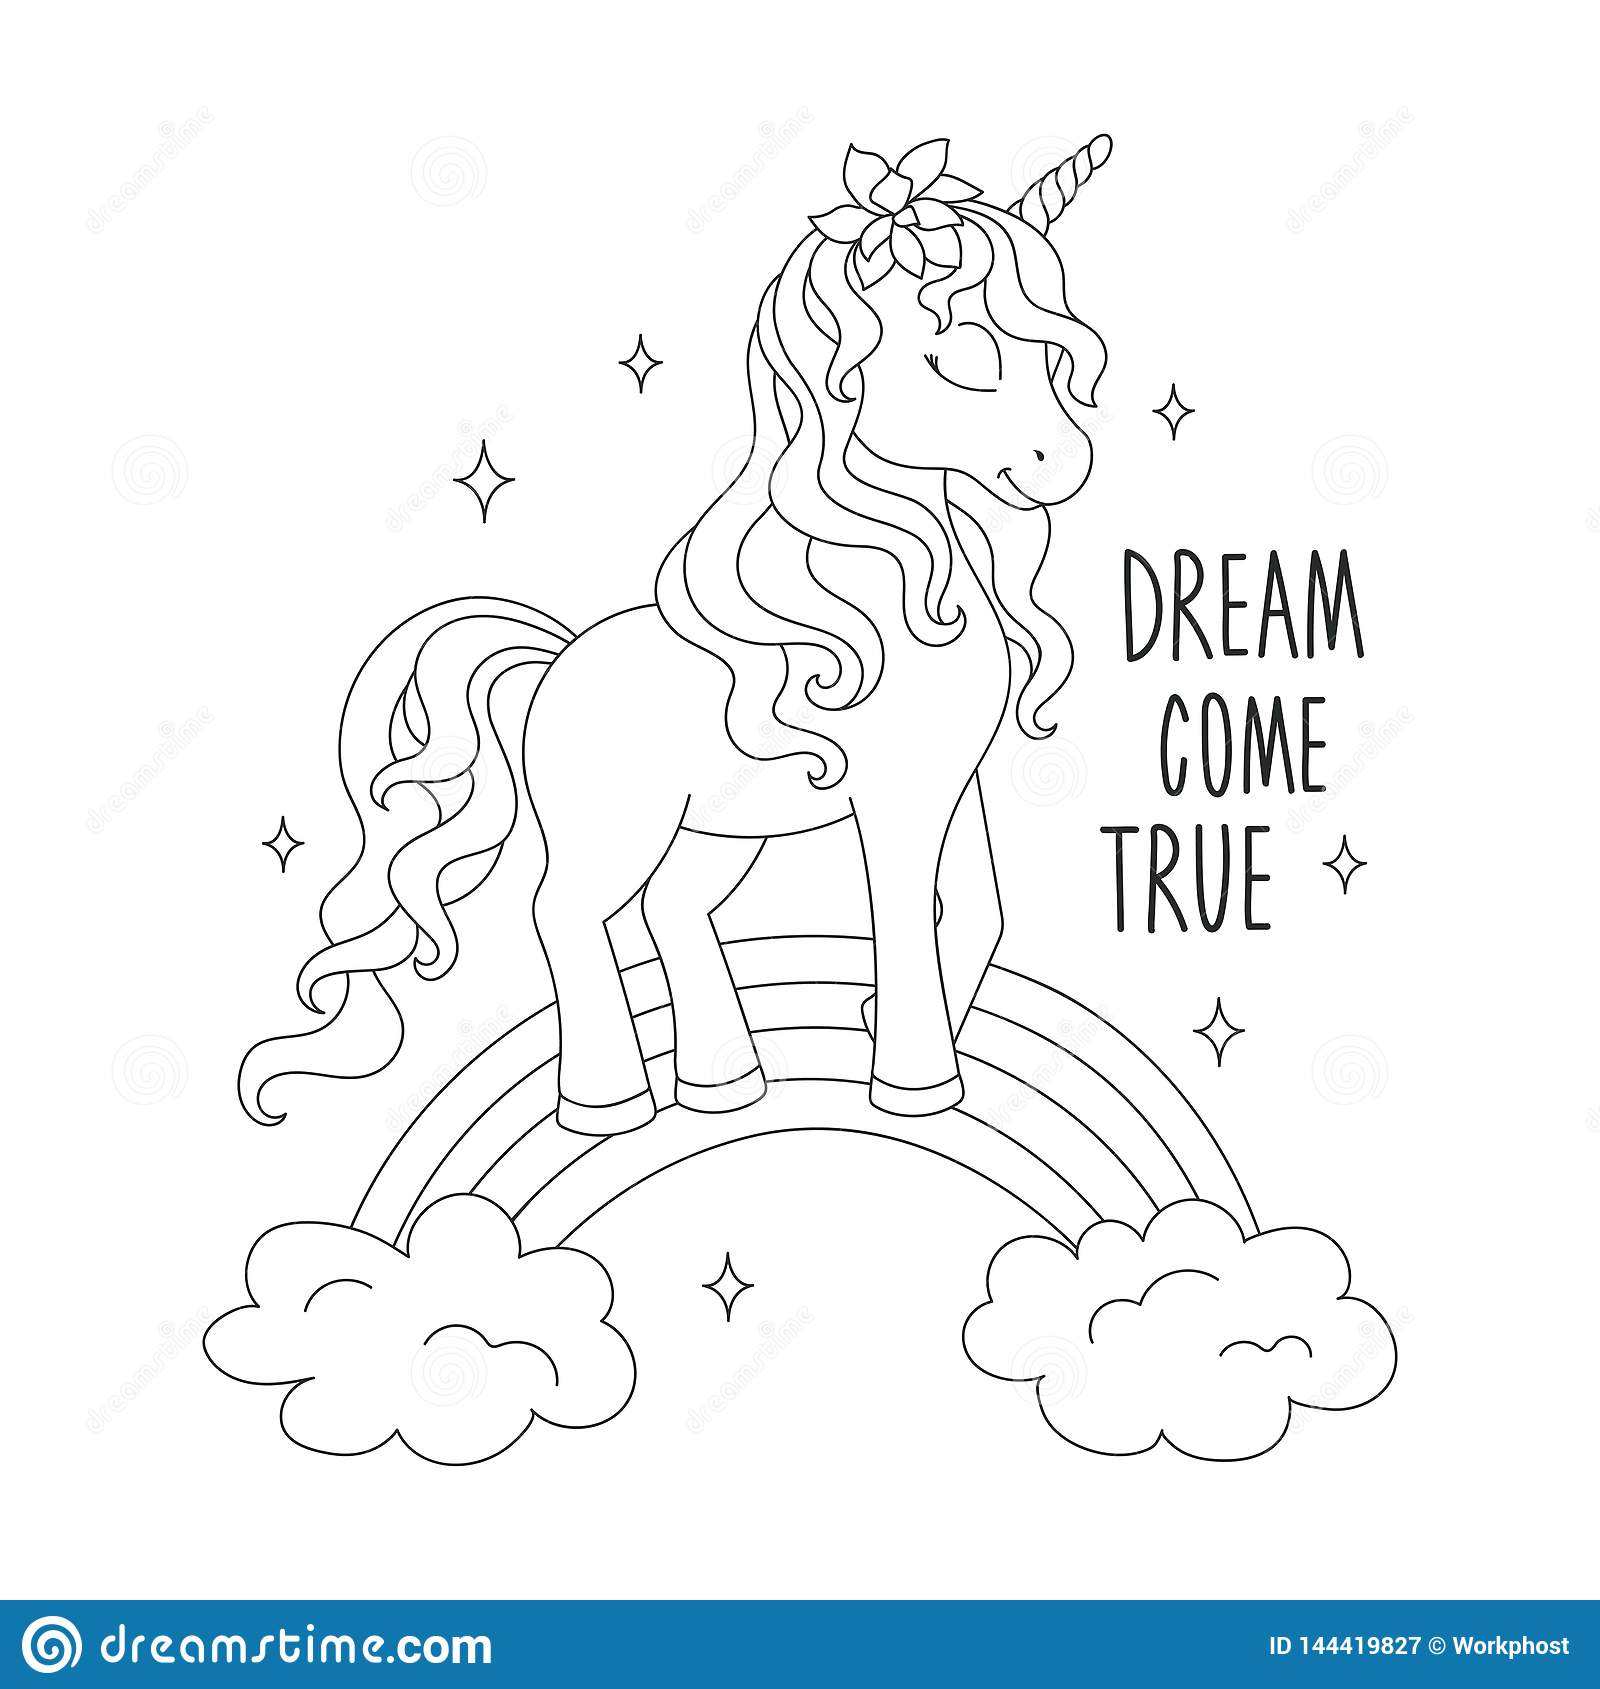 Unicorn On A Rainbow Coloring Pages Dream Come True Text Design For Kids Fashion Illustration Drawing In Modern Style For Stock Illustration Illustration Of Fashion Horse 144419827